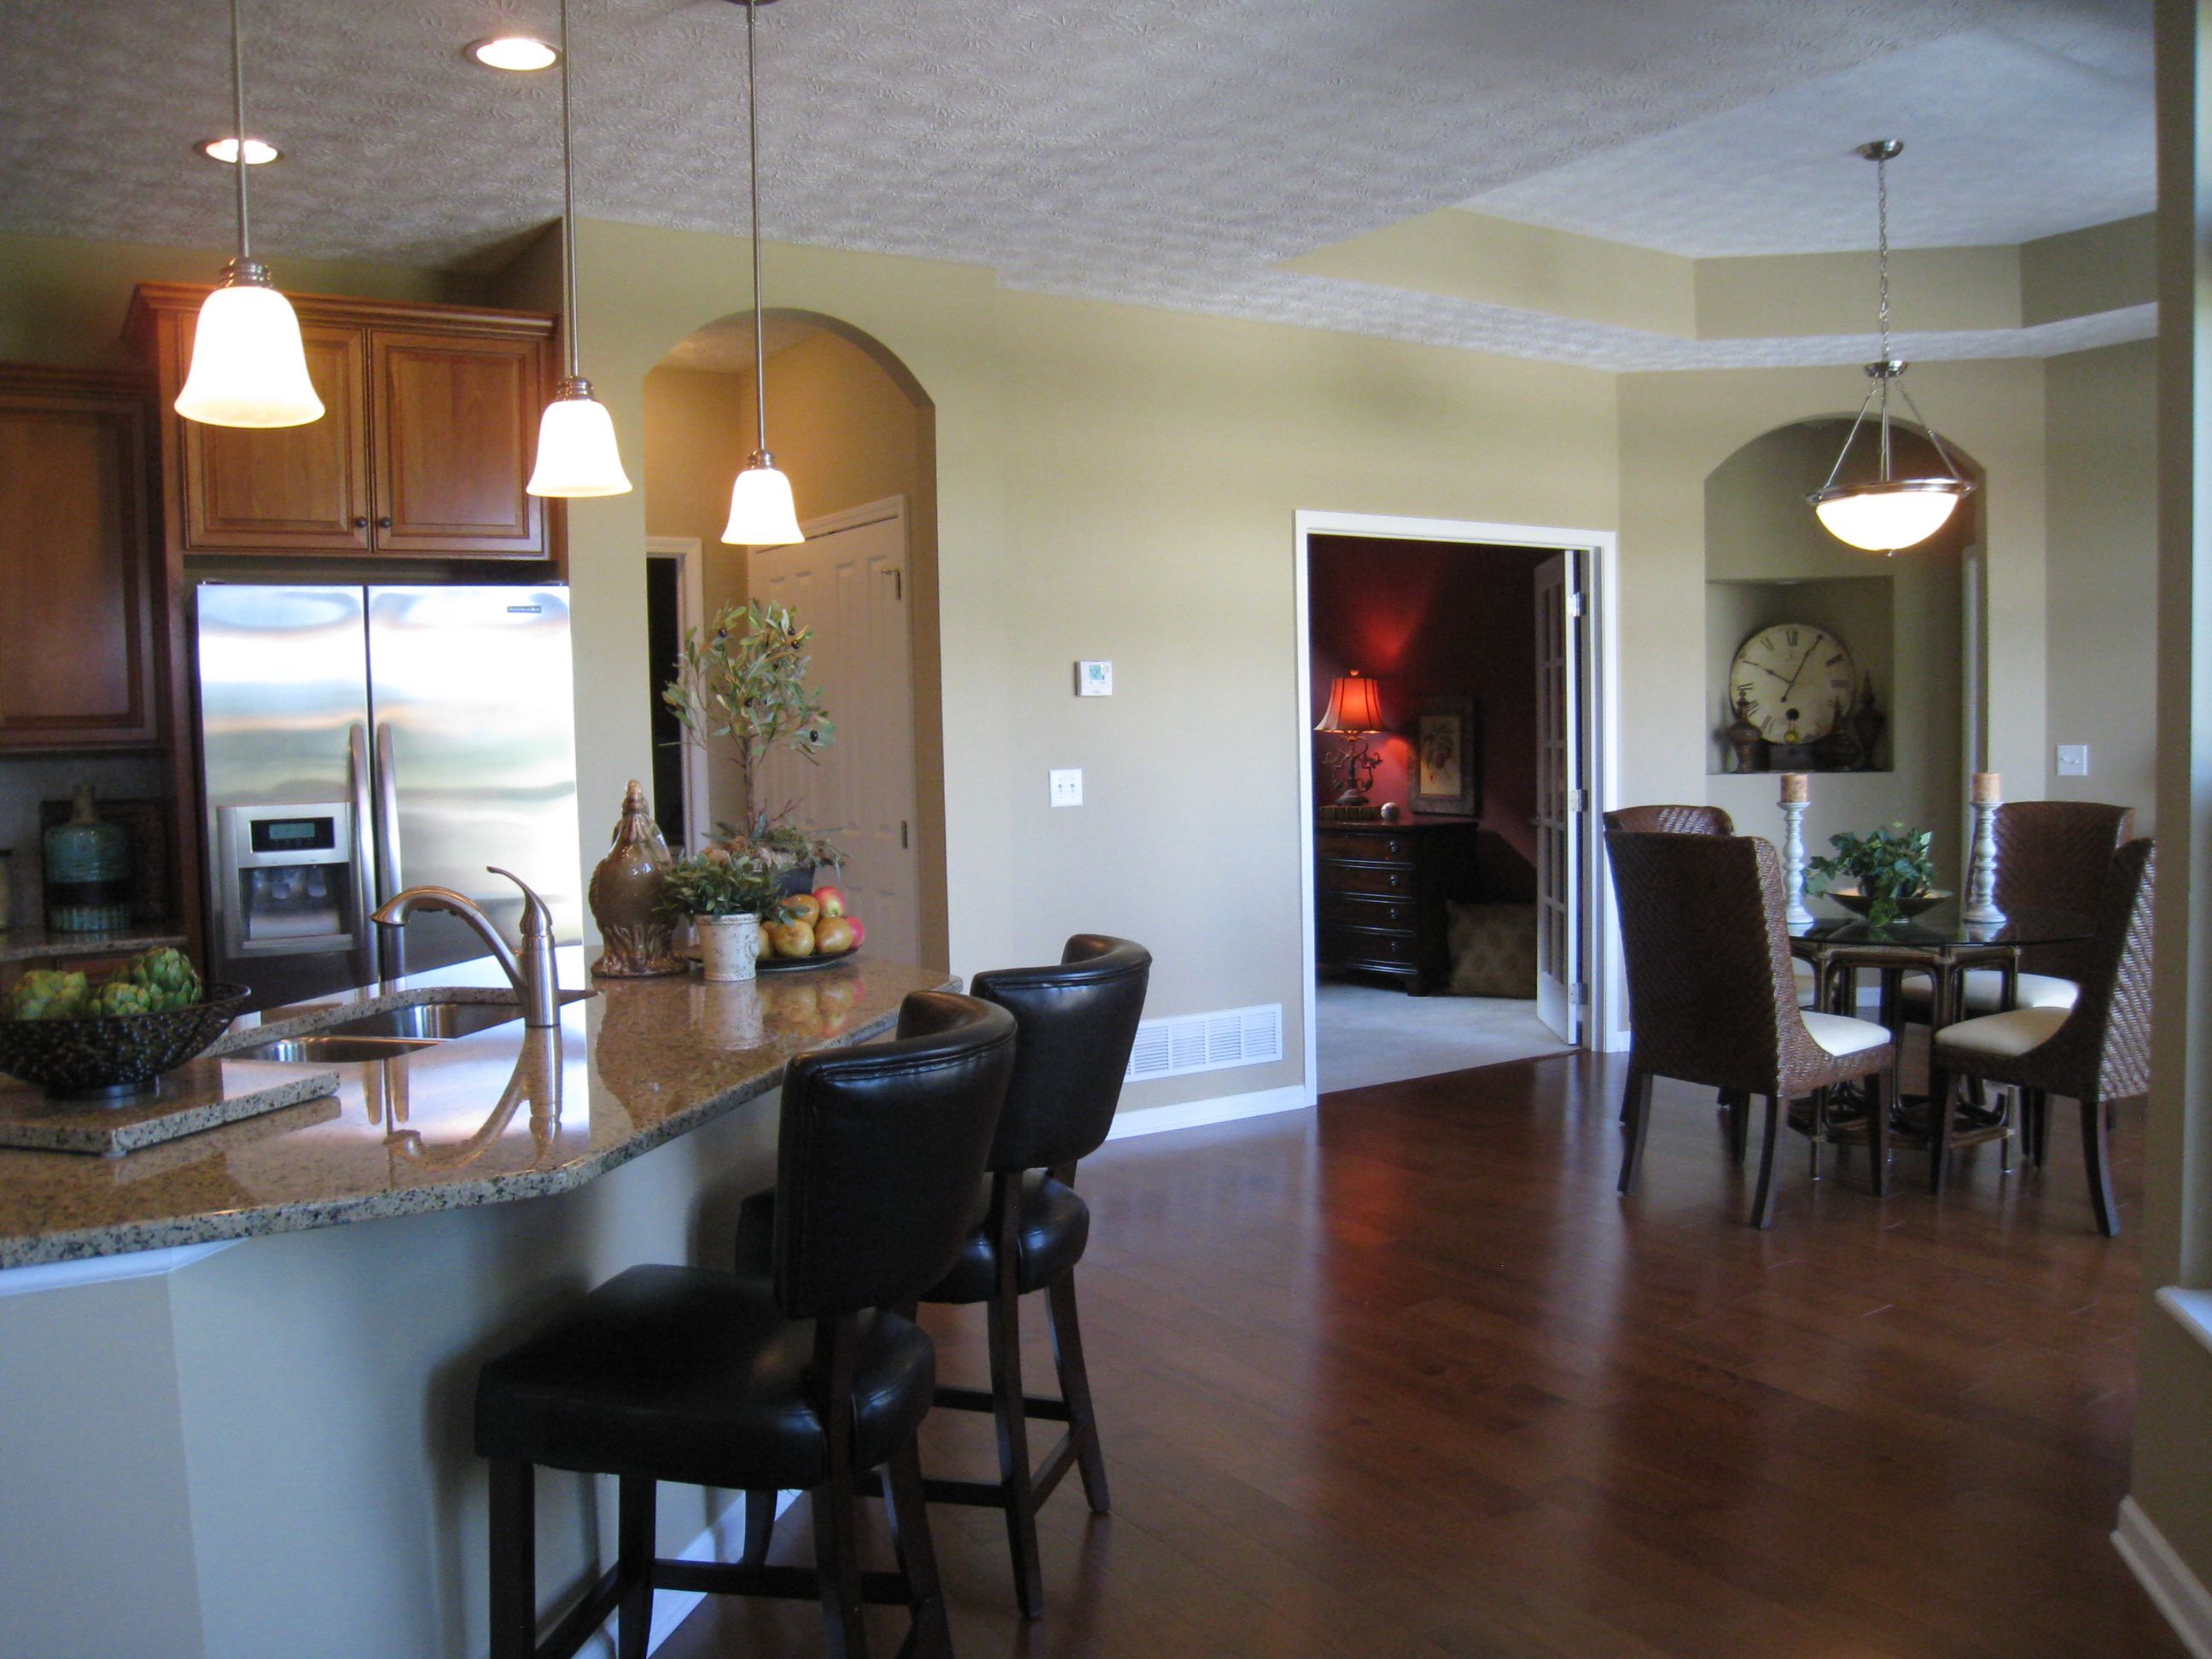 Model home merchandising by design by desann for quarry lakes portico model